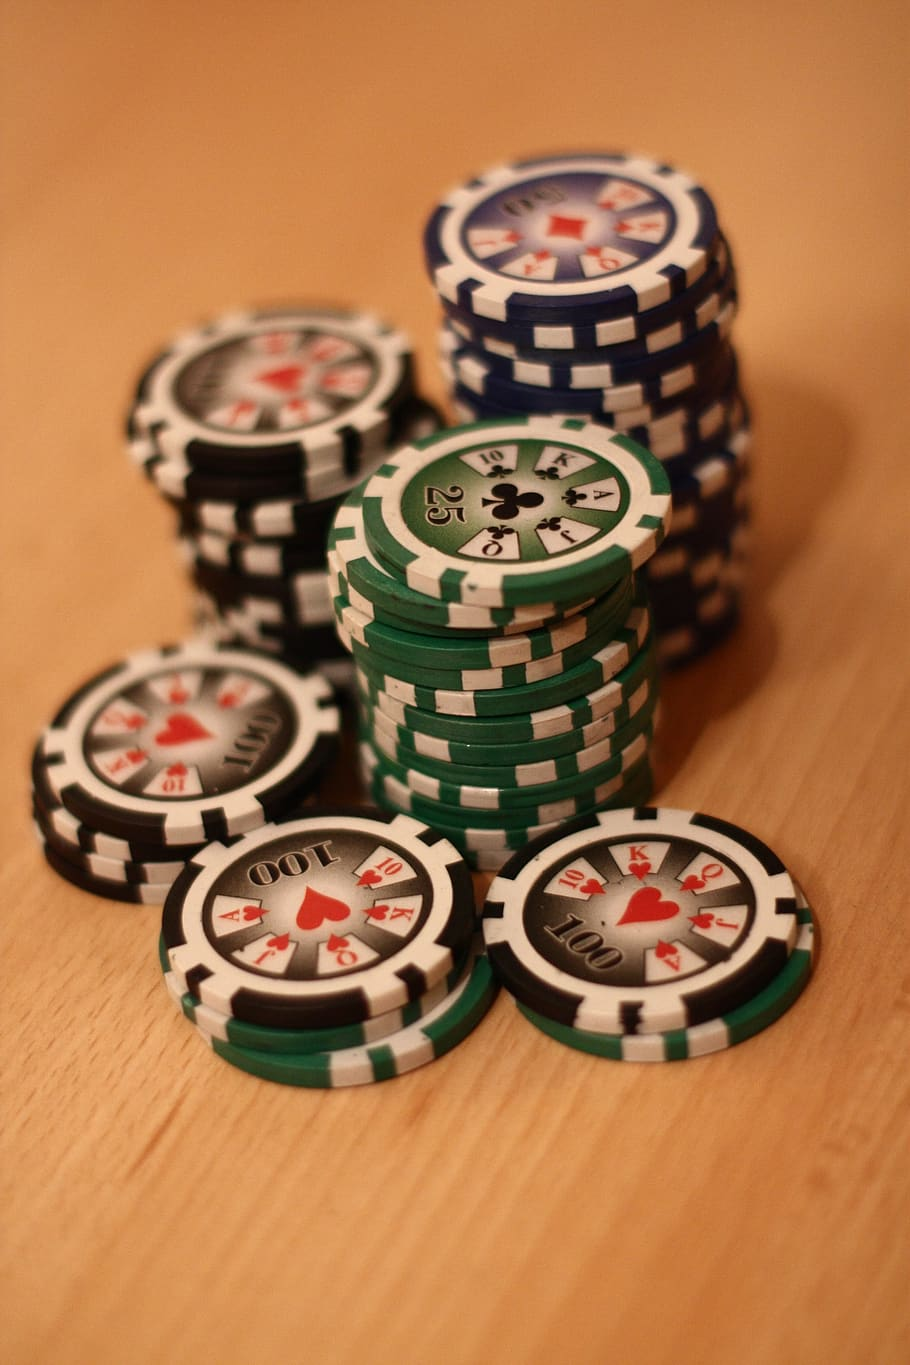 Hd Poker Posted By Christopher Mercado